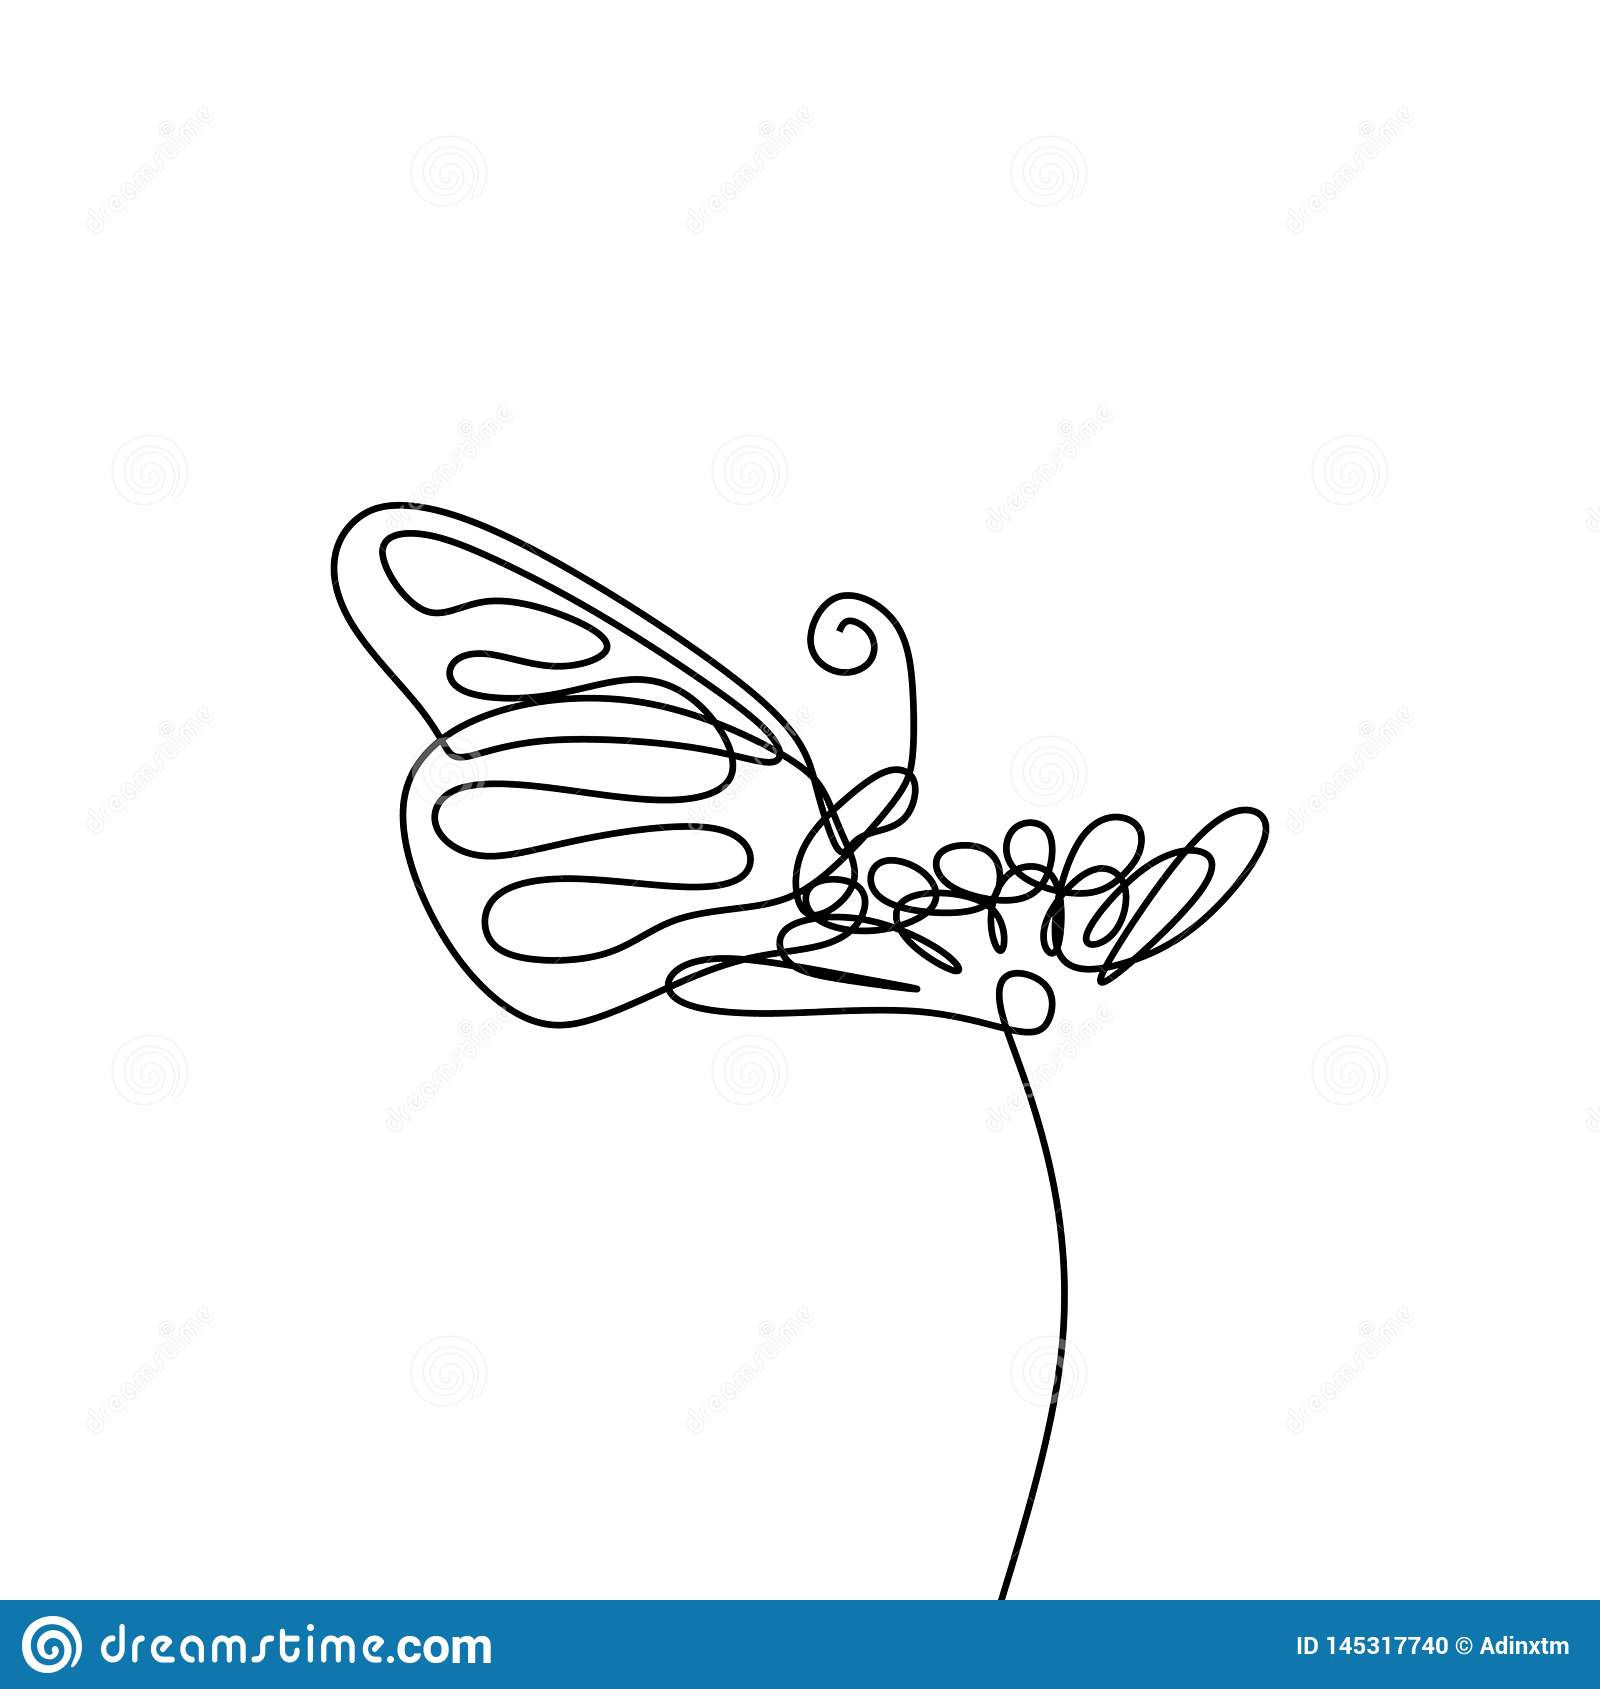 Simple butterfly and flower continuous line drawing vector illustration minimalist design